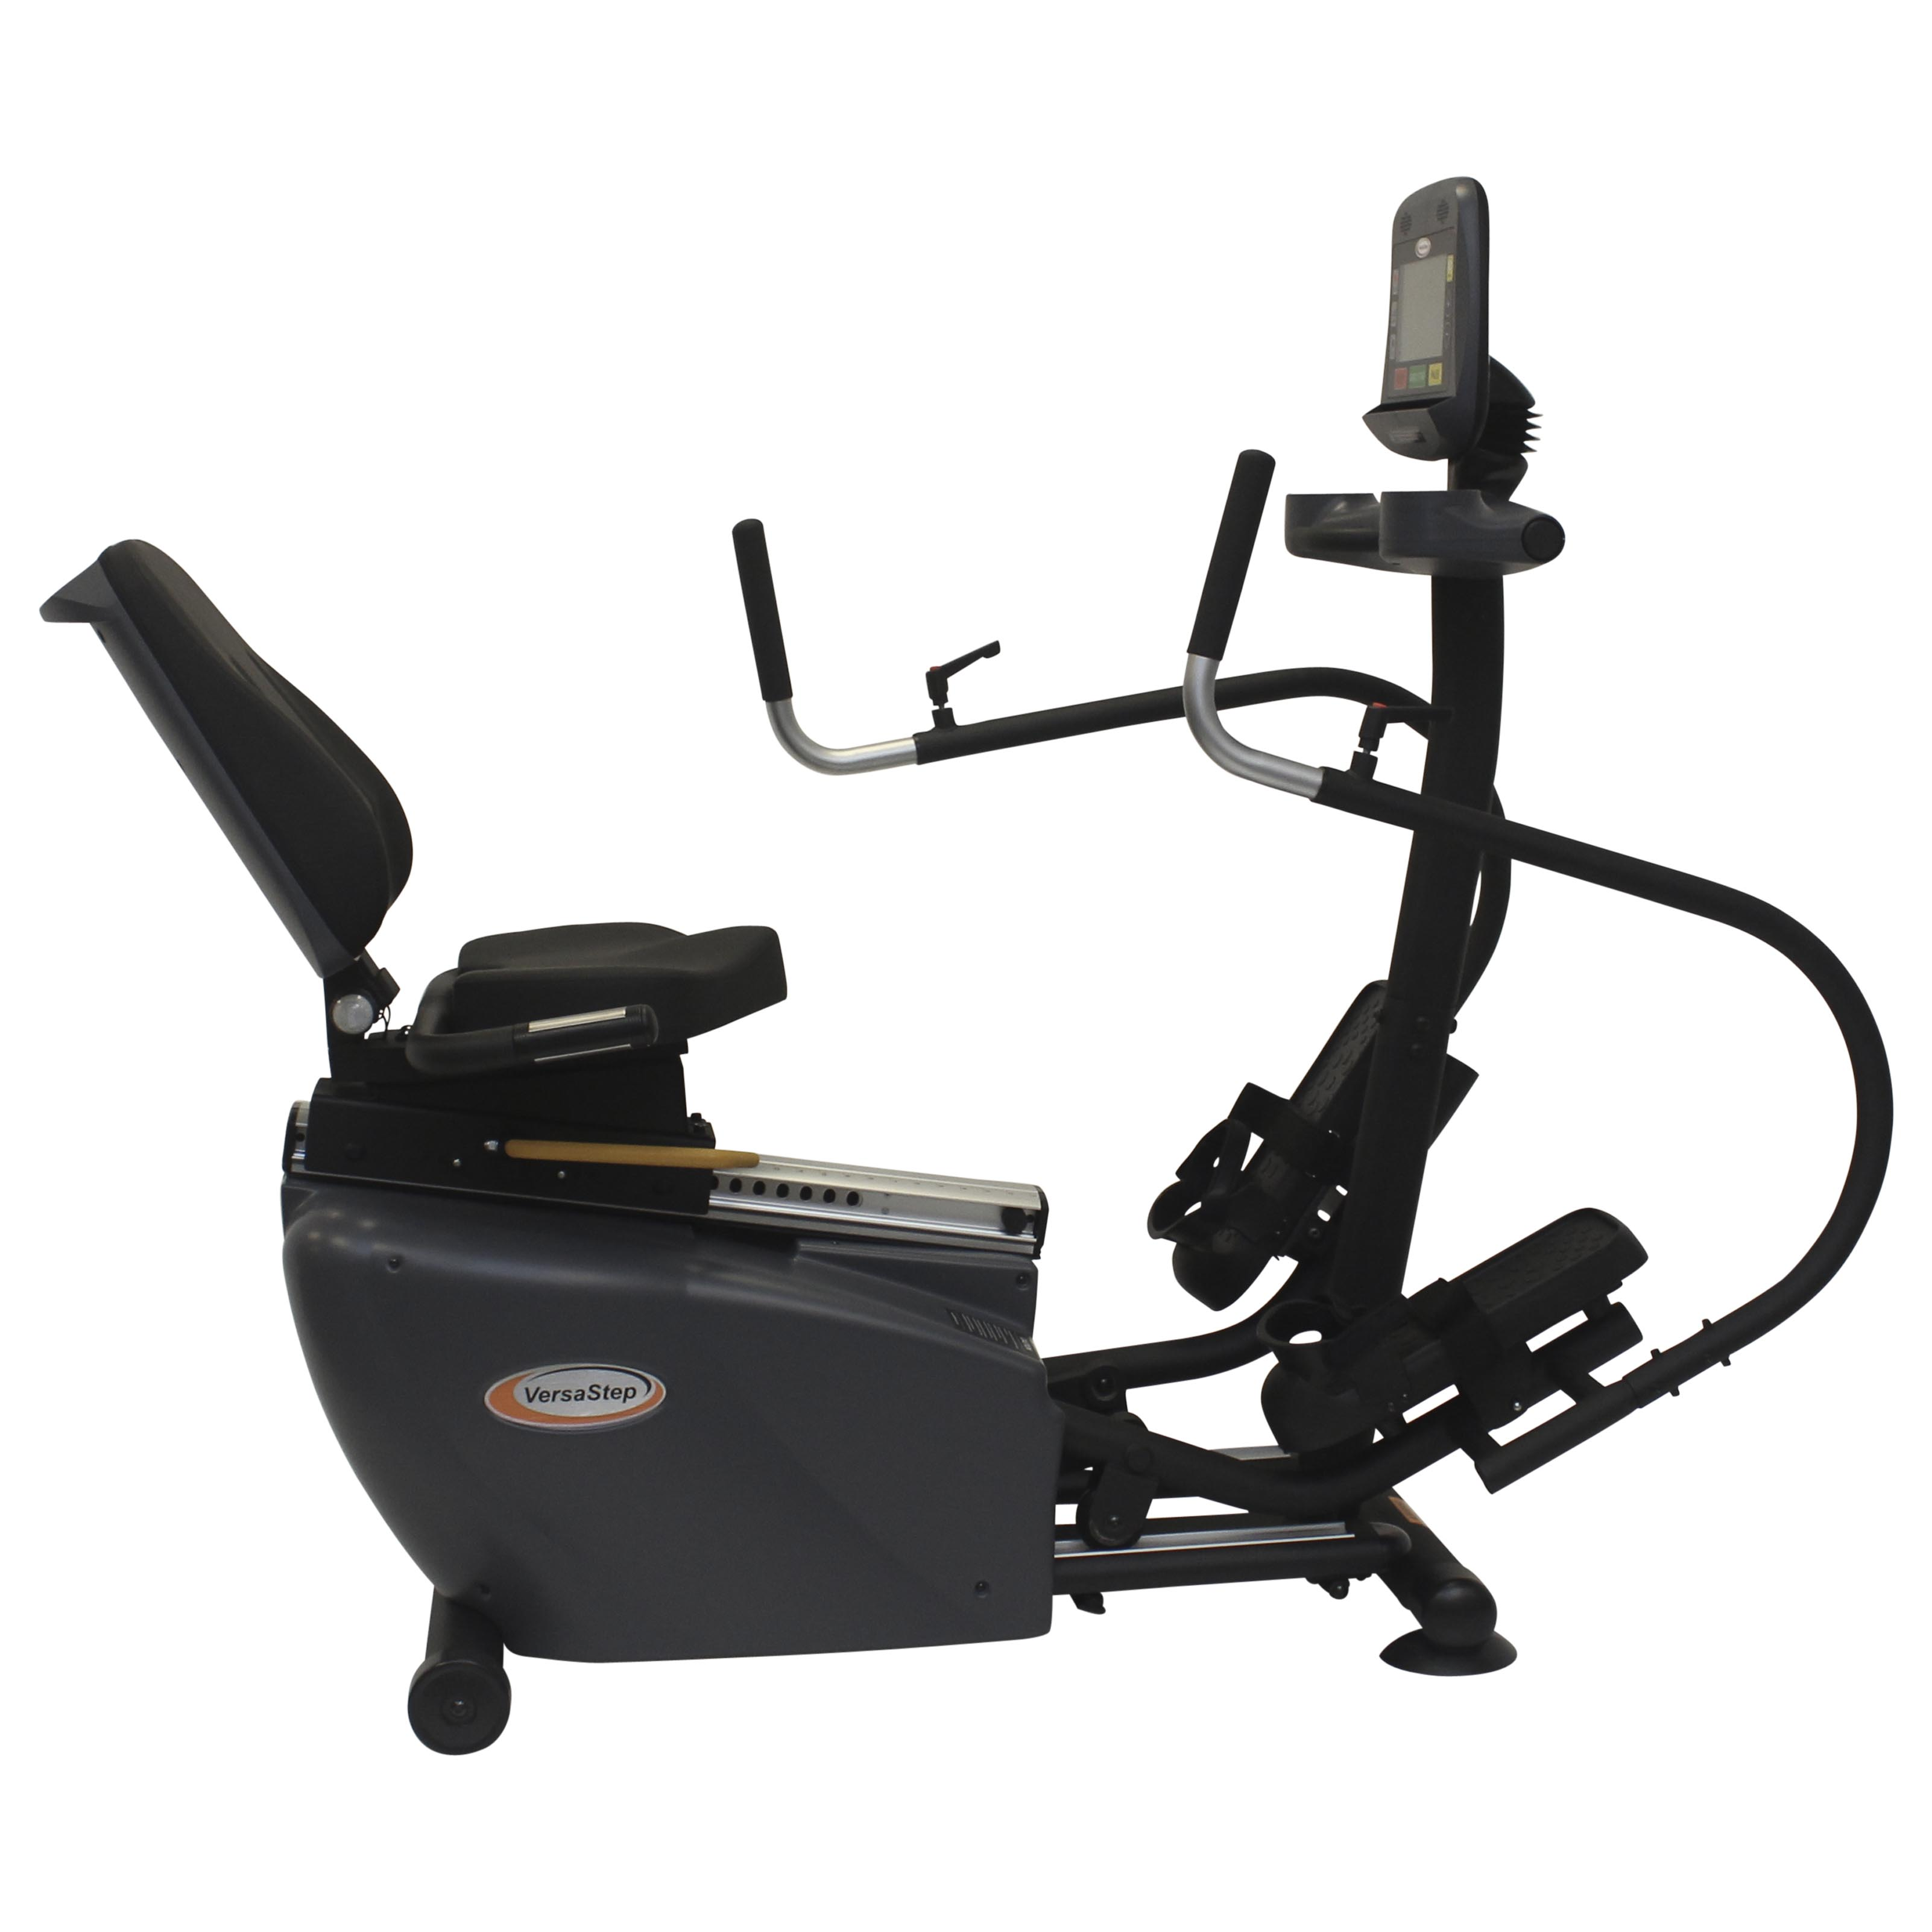 VersaStep Ipsilateral Recumbent Cross Trainer